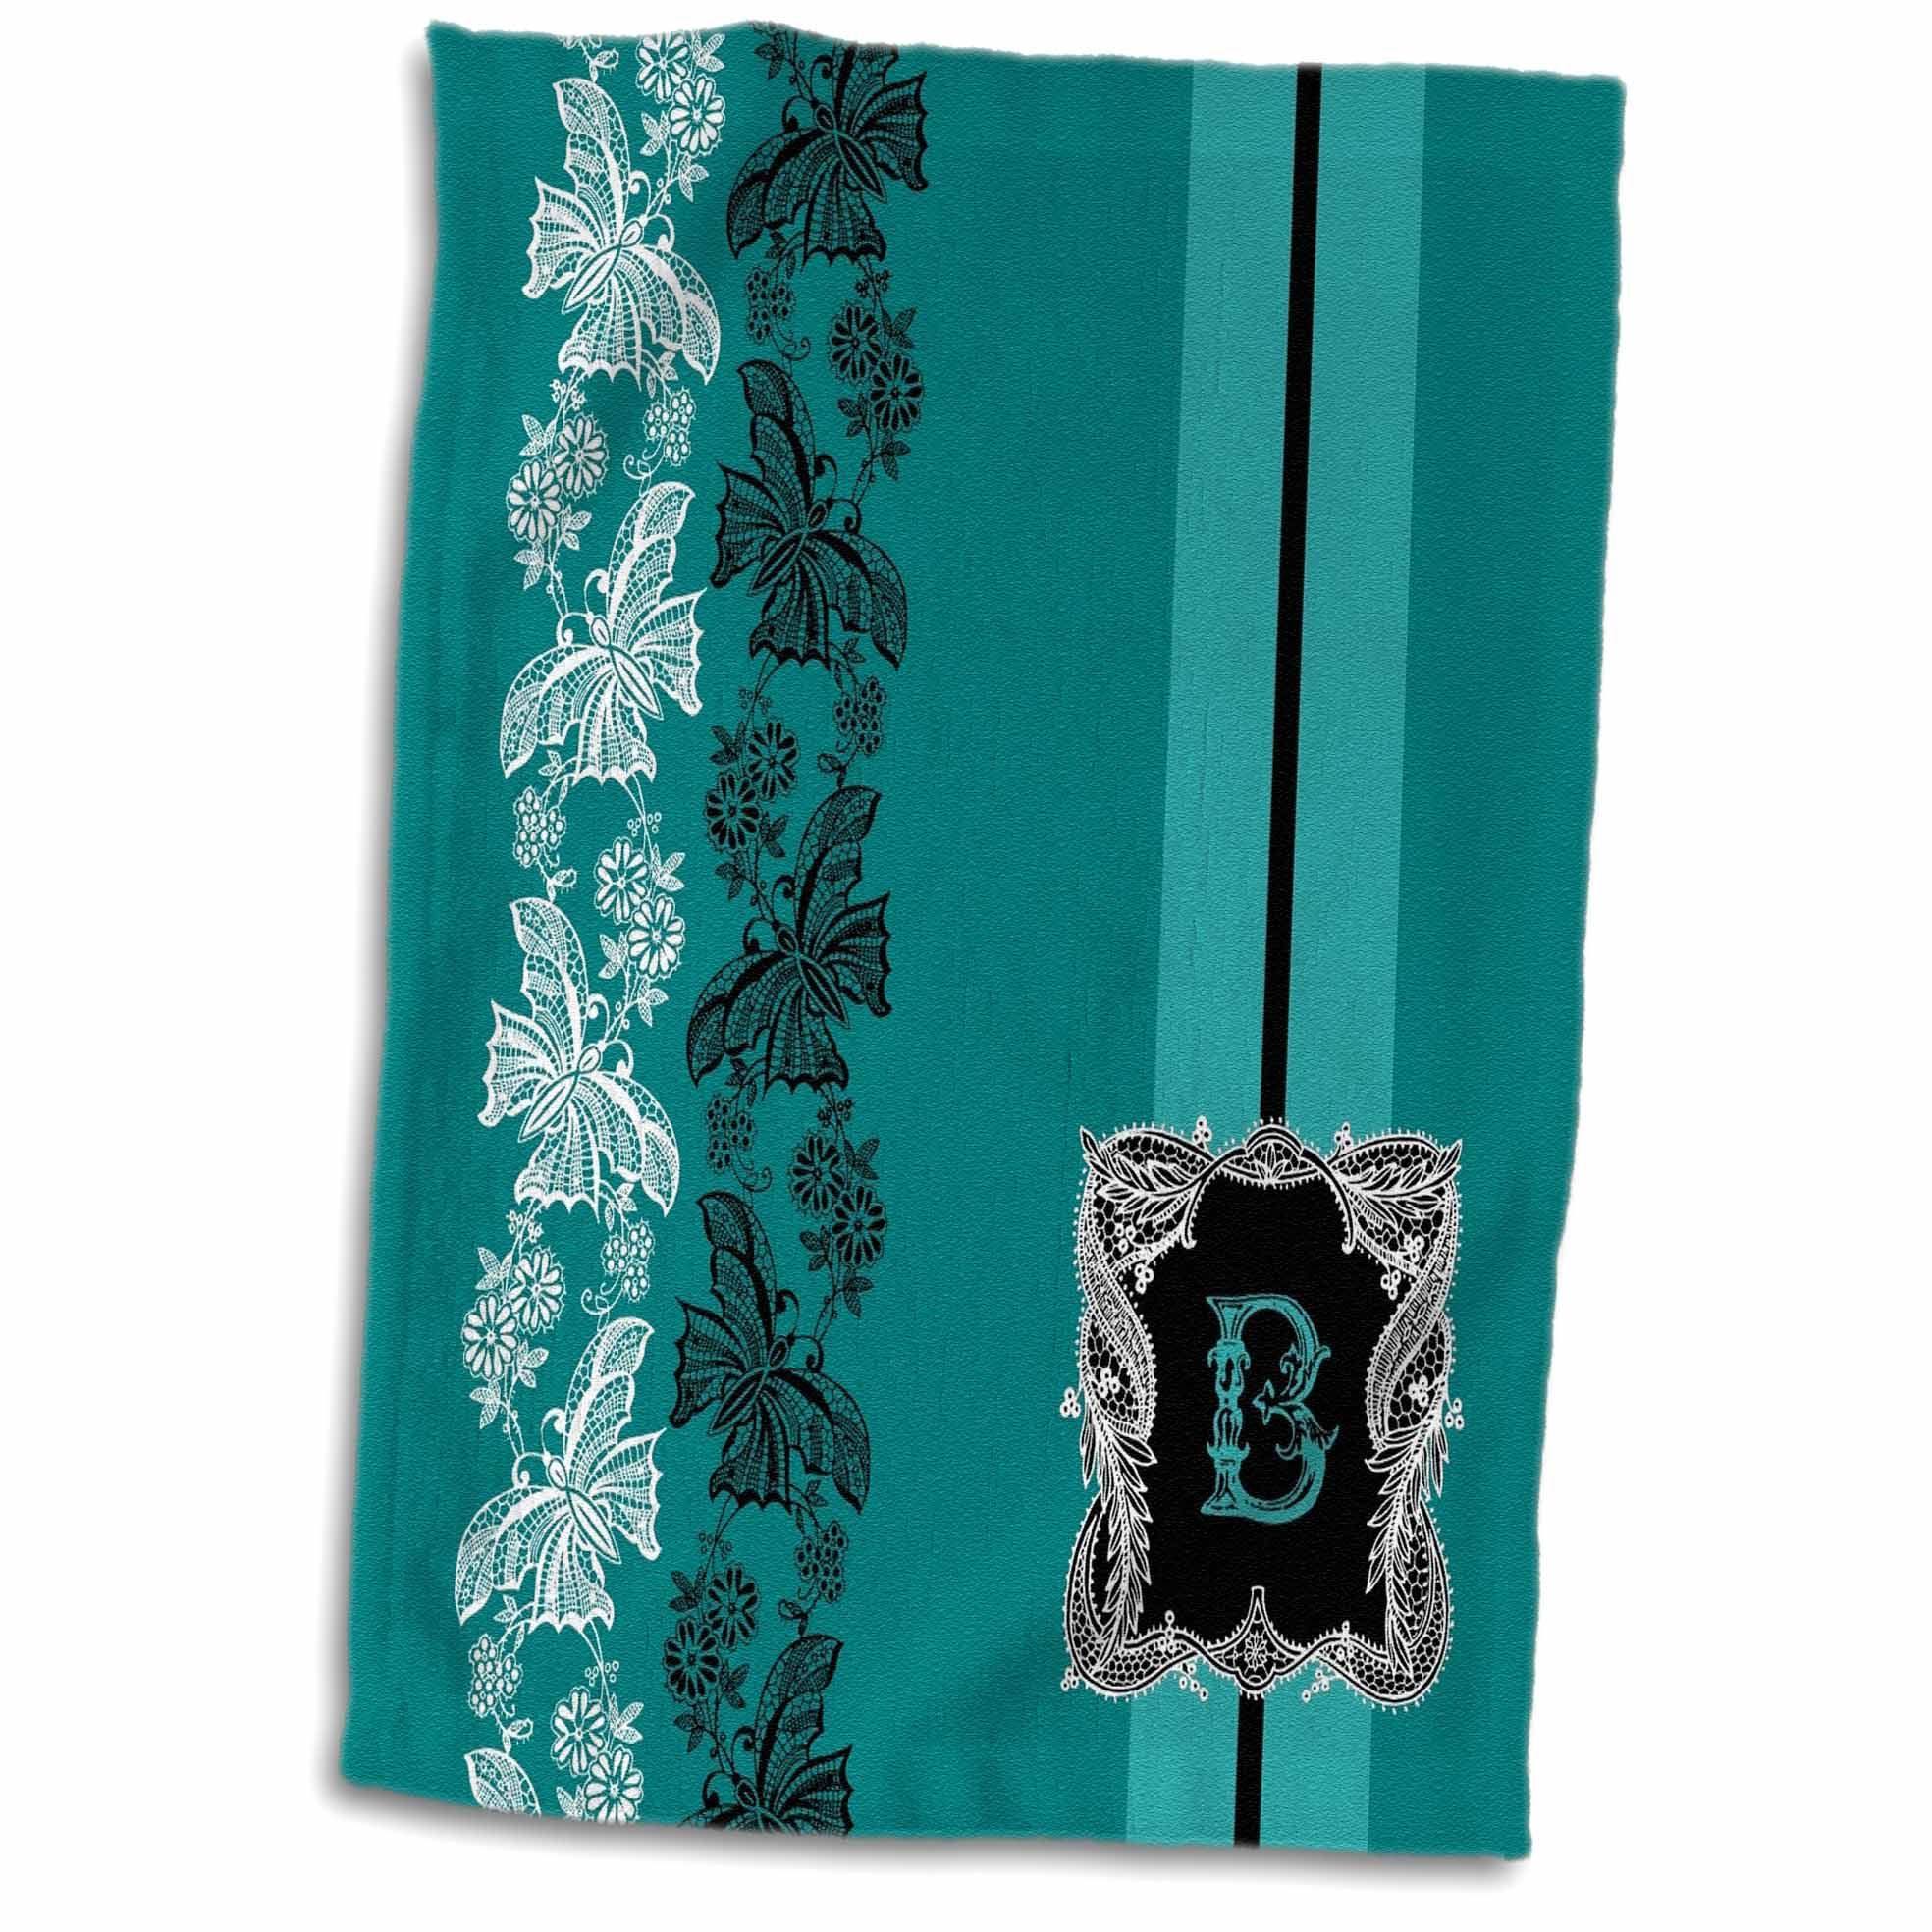 3dRose Monogram Initial B in Teal White and Black Lace - Towel, 15 by 22-inch